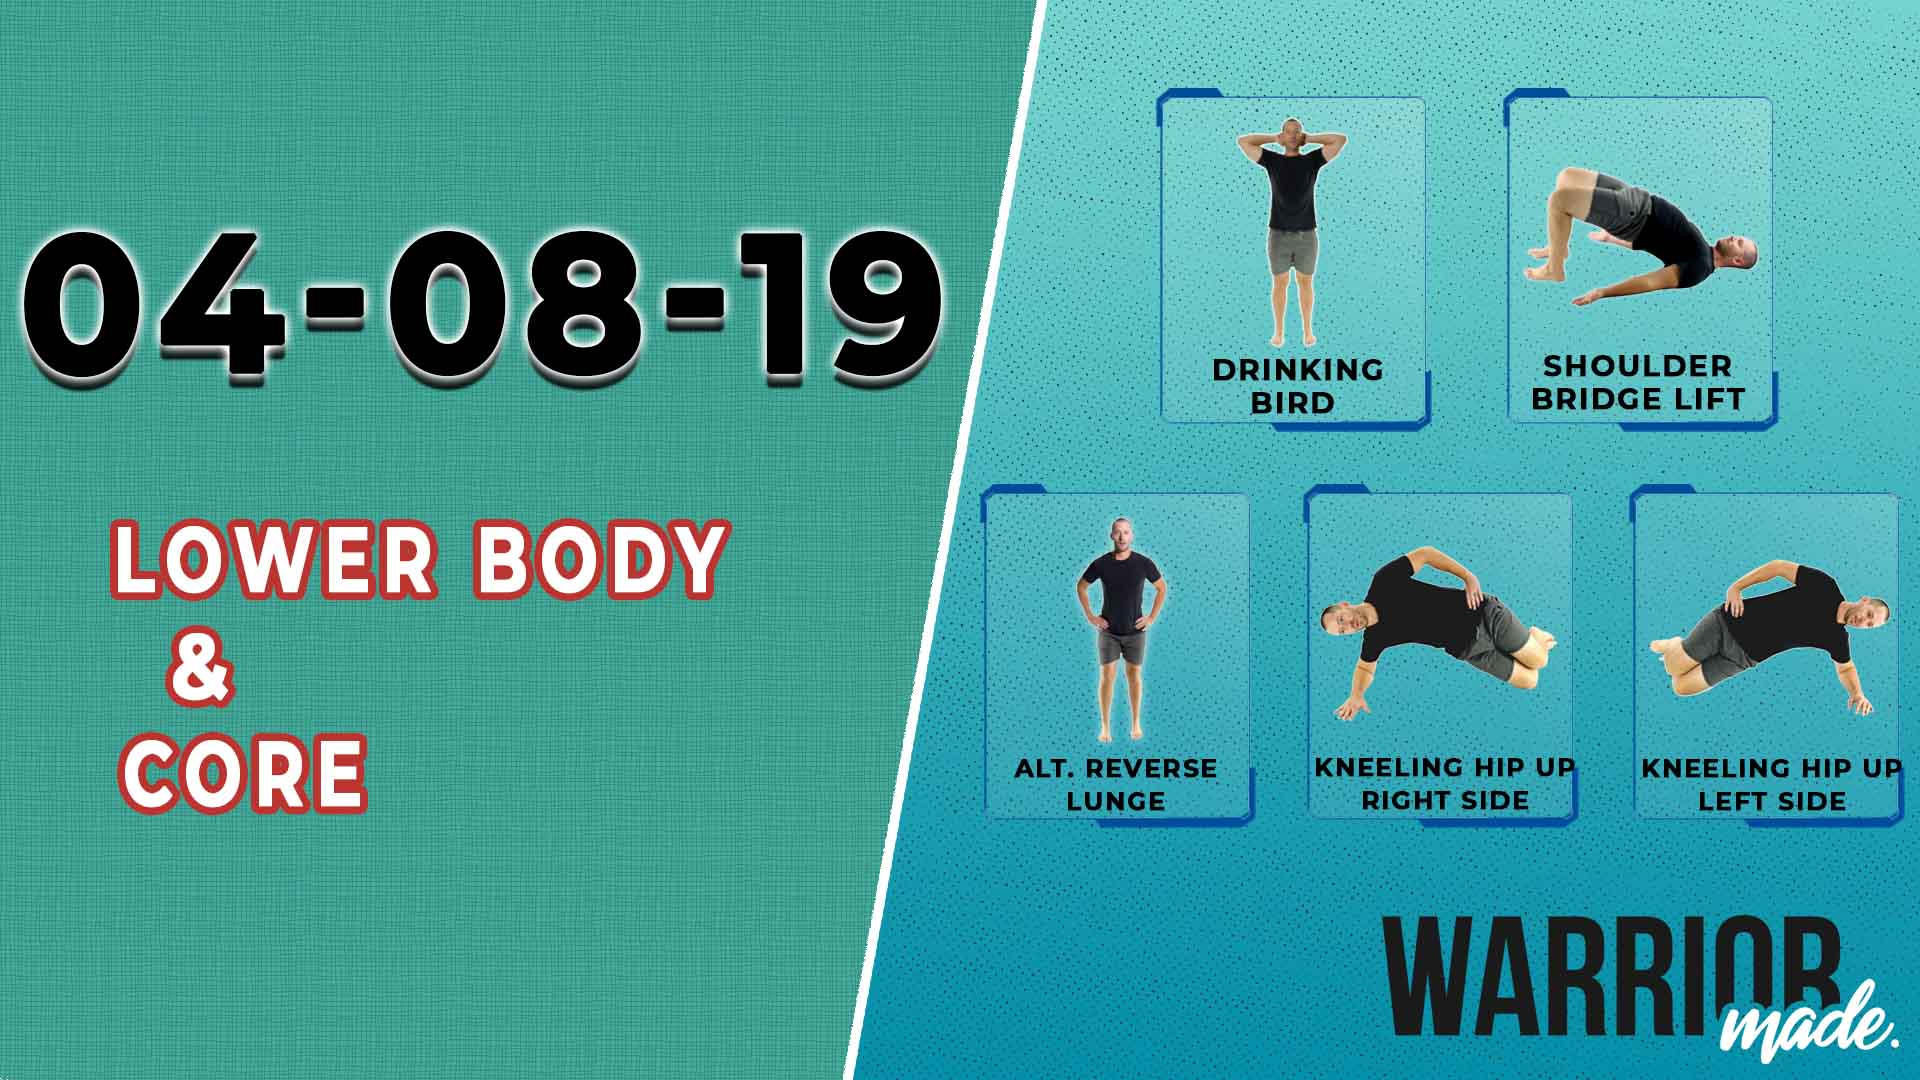 workouts-04-08-19